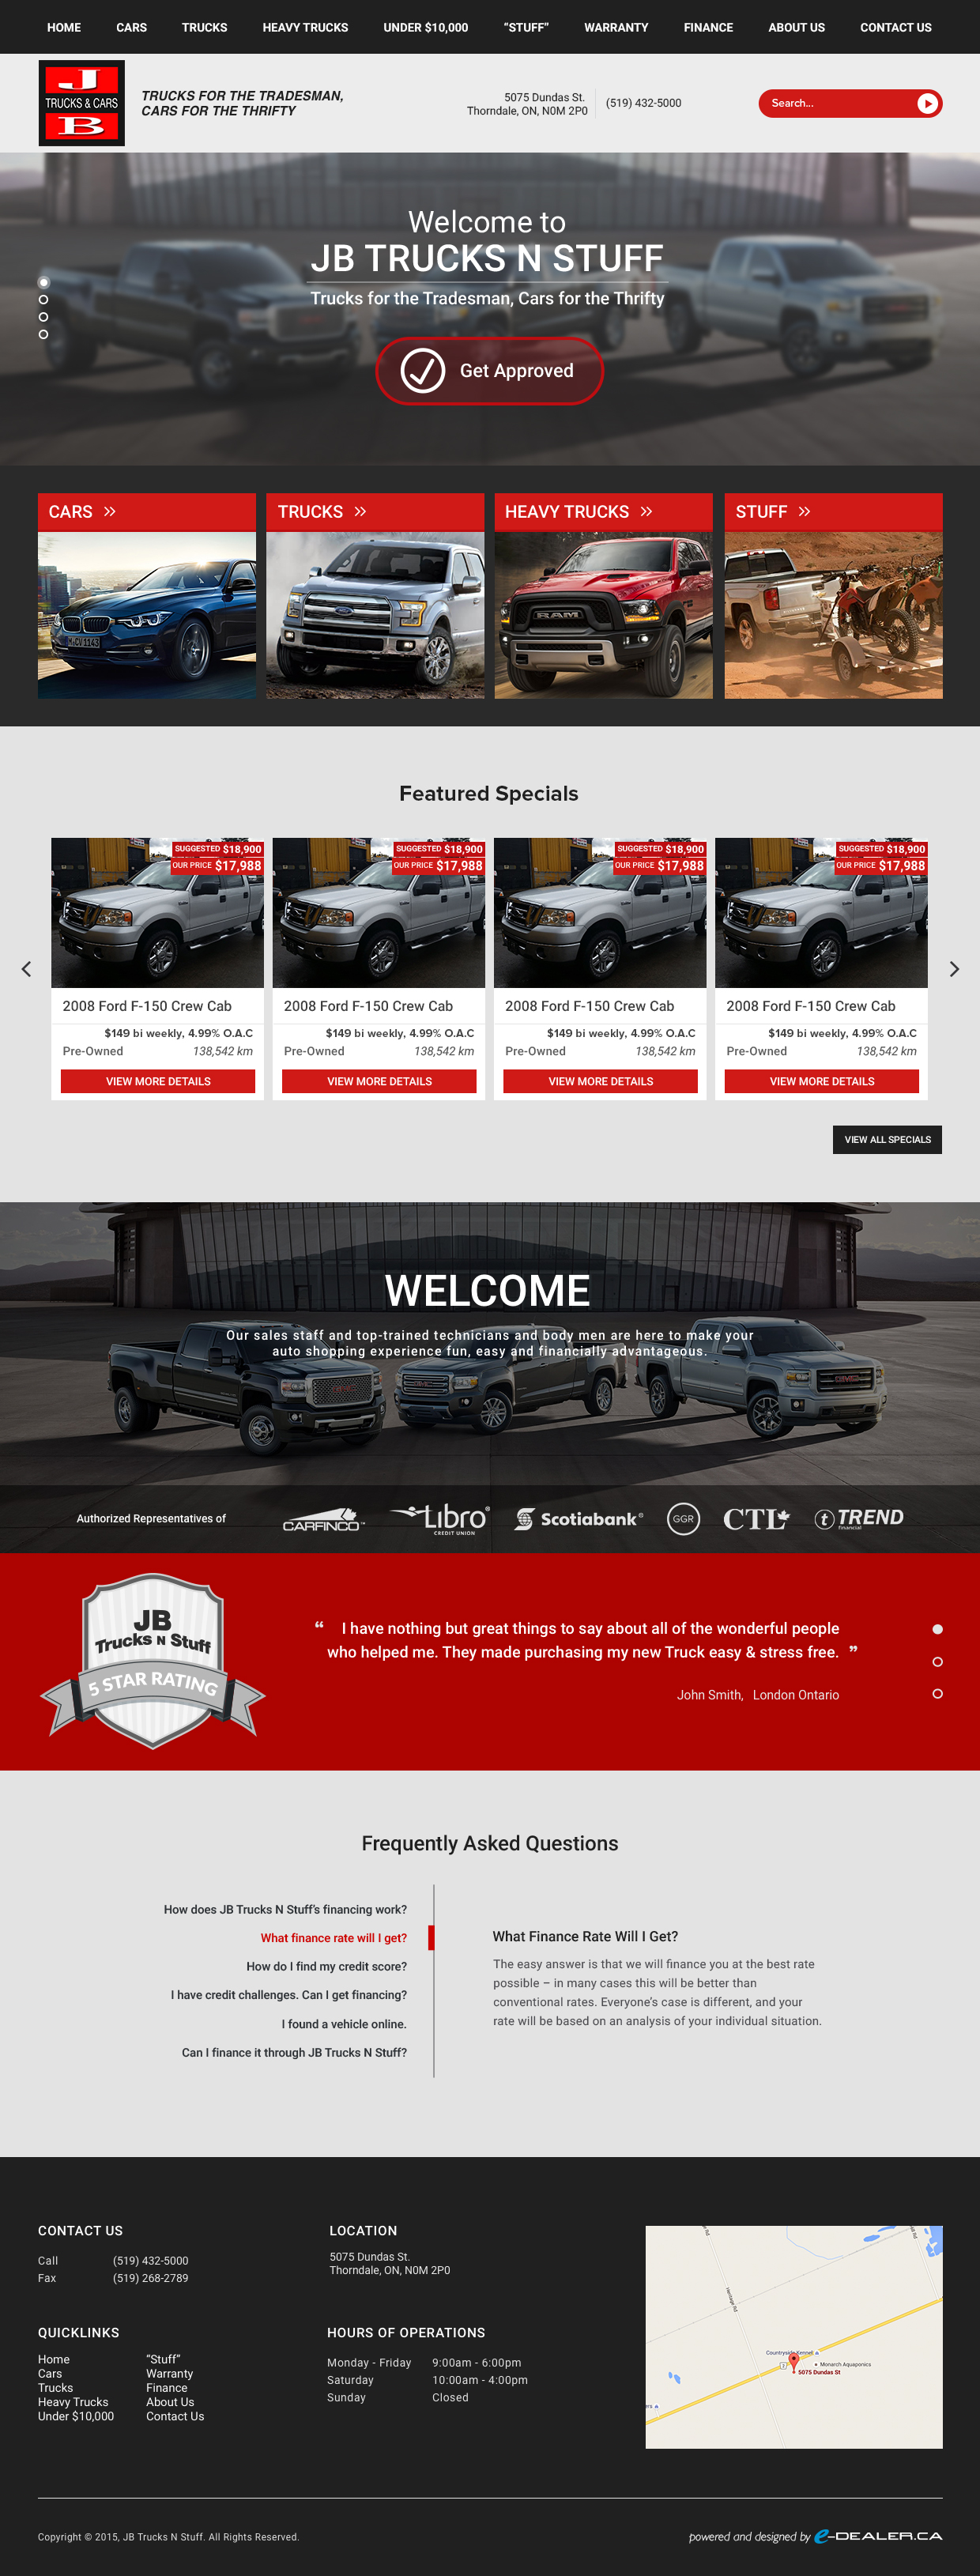 JBtrucksNstuff-Design-Final